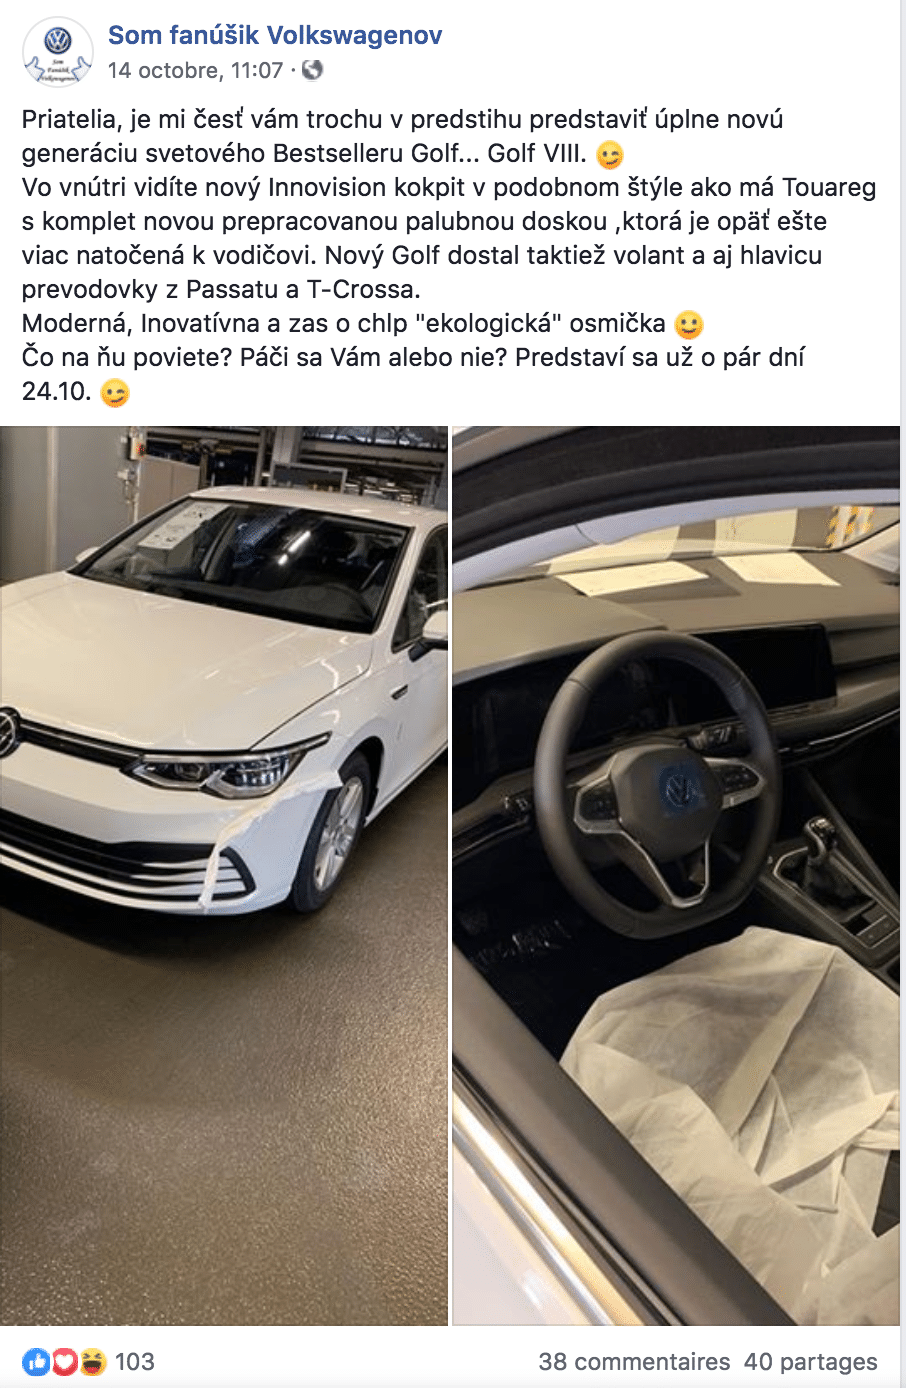 Volkswagen Golf 8 leak